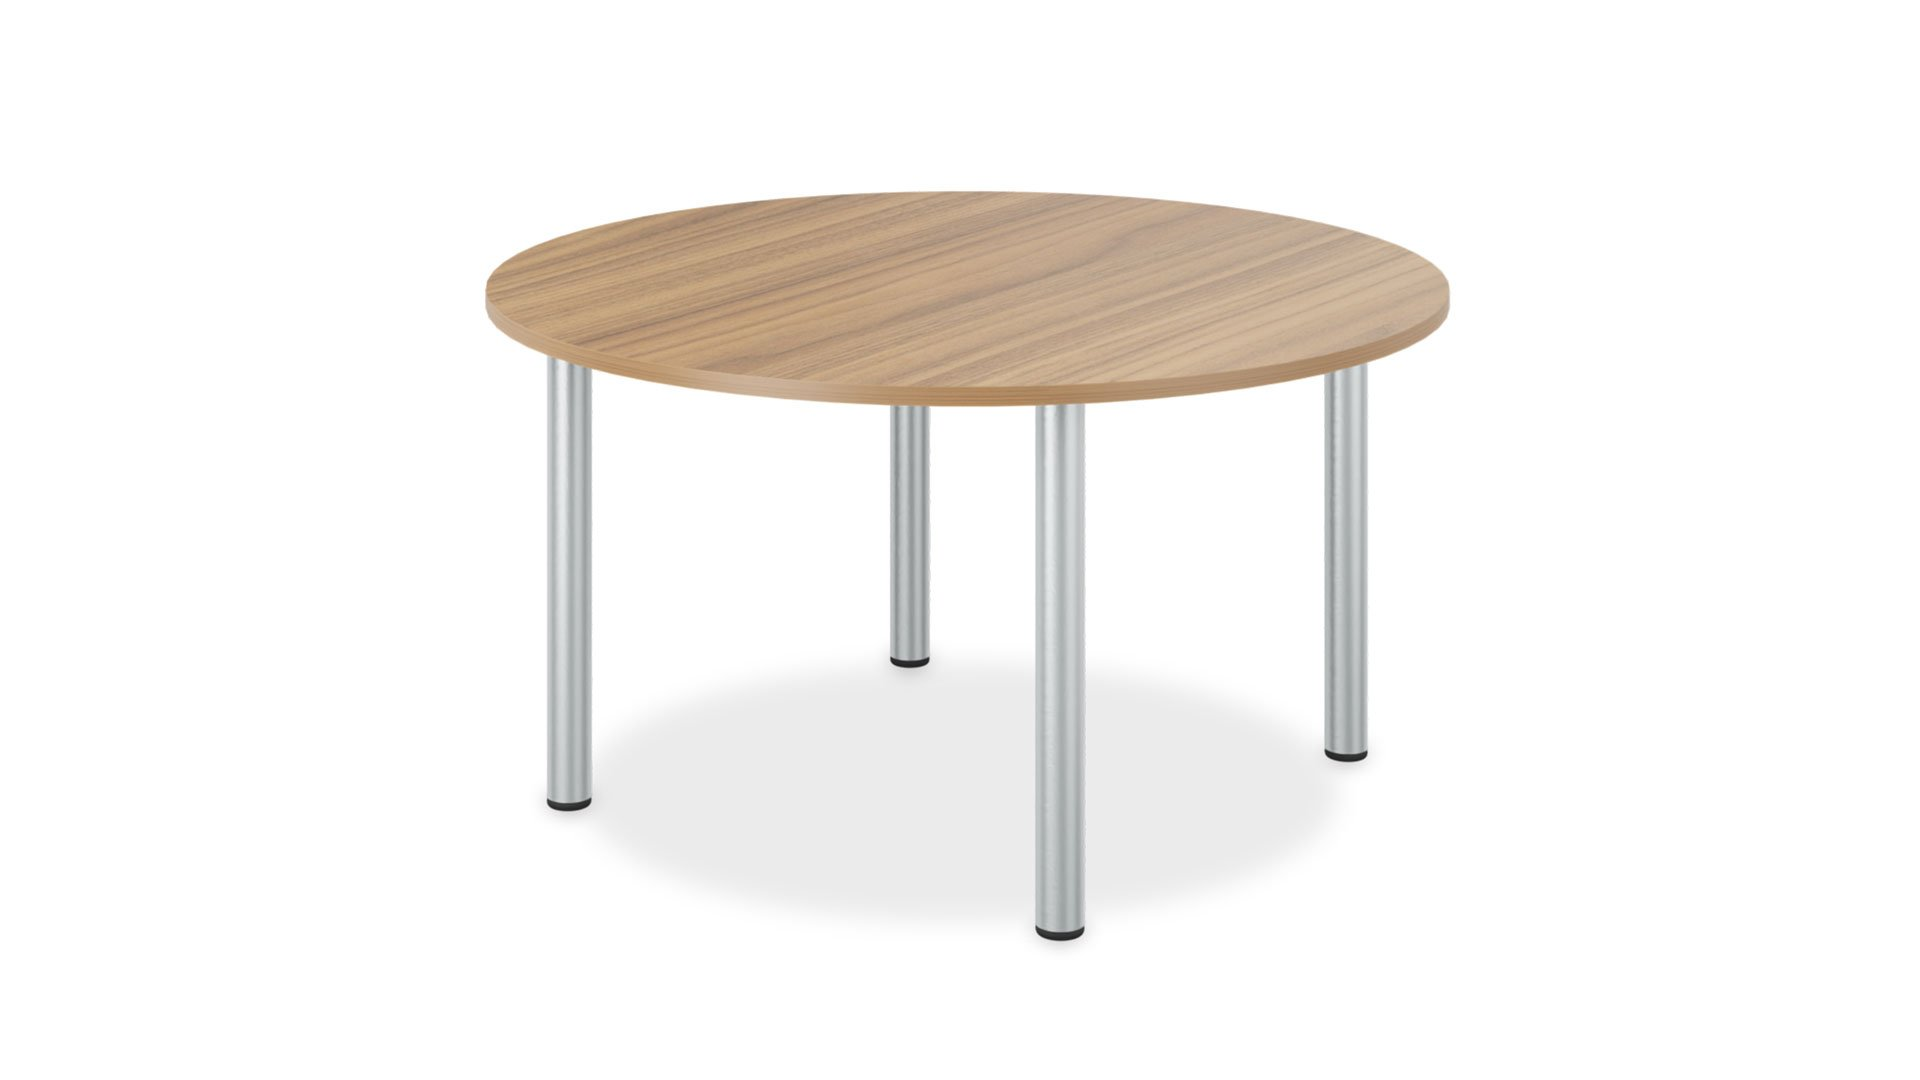 Round Meeting Table 1673 with Round Legs